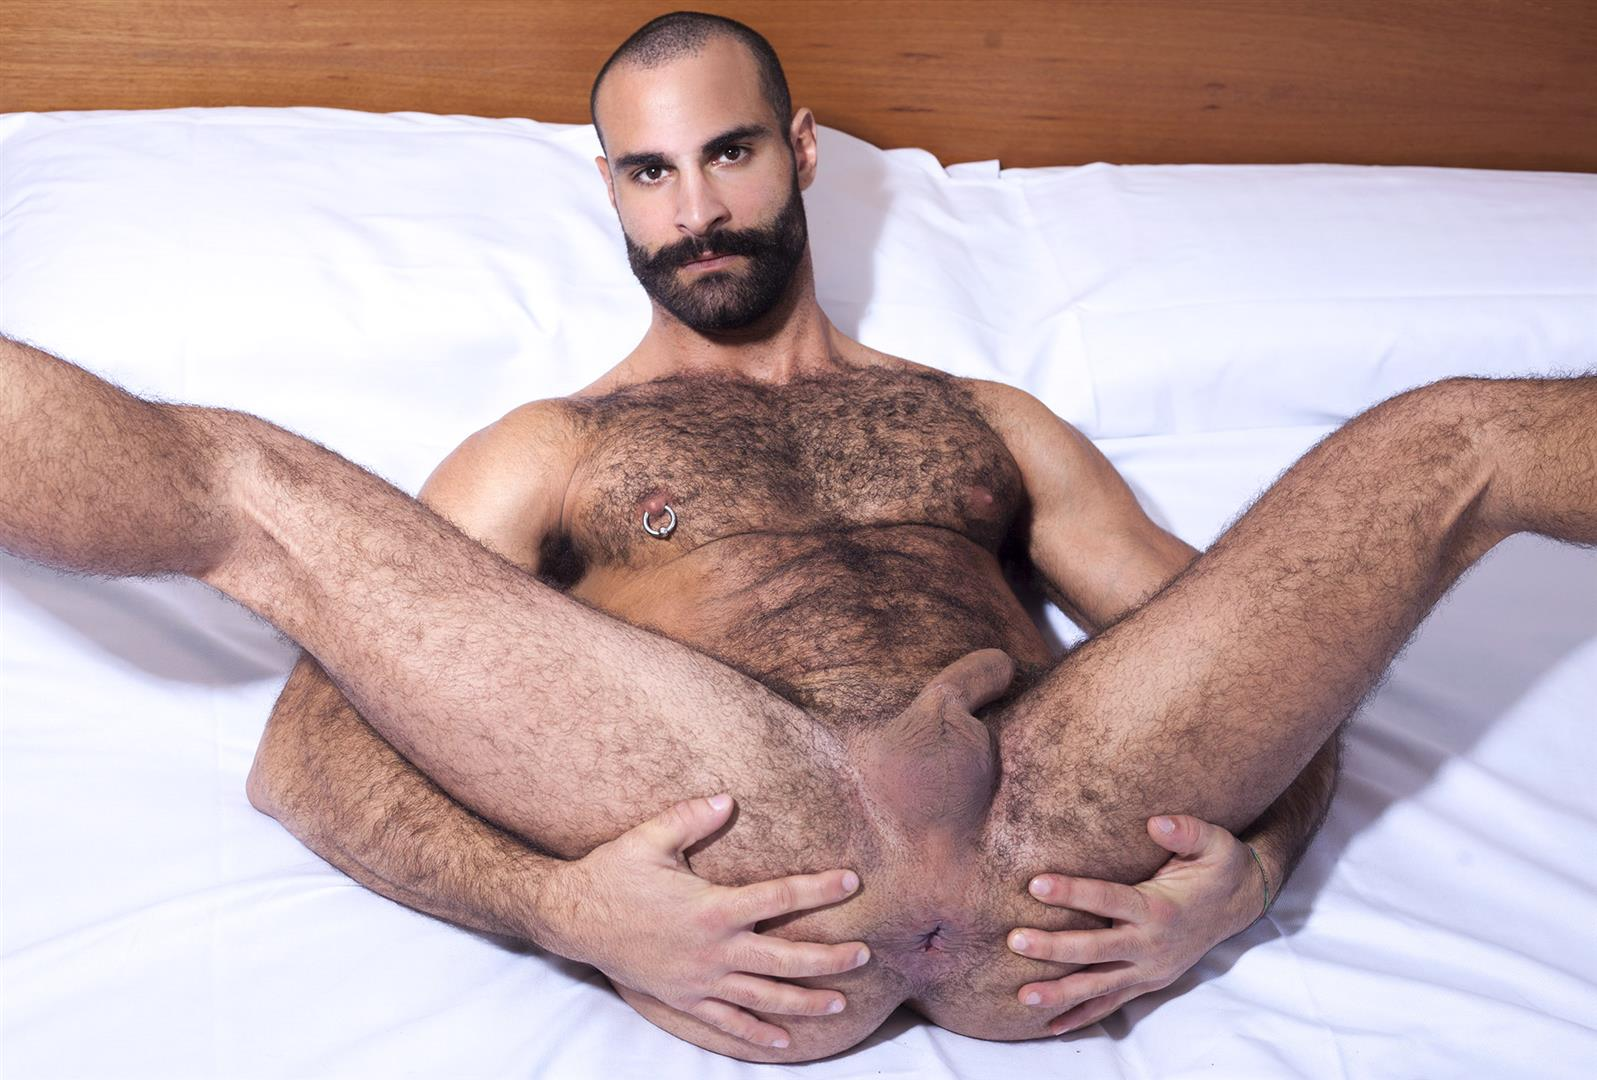 Fuckermate Jean Frank and Paco Hairy Muscle Hunks With Big Uncut Cocks Fucking Amateur Gay Porn 18 Hairy Muscle Italian Hunks With Big Uncut Cocks Fucking Rough